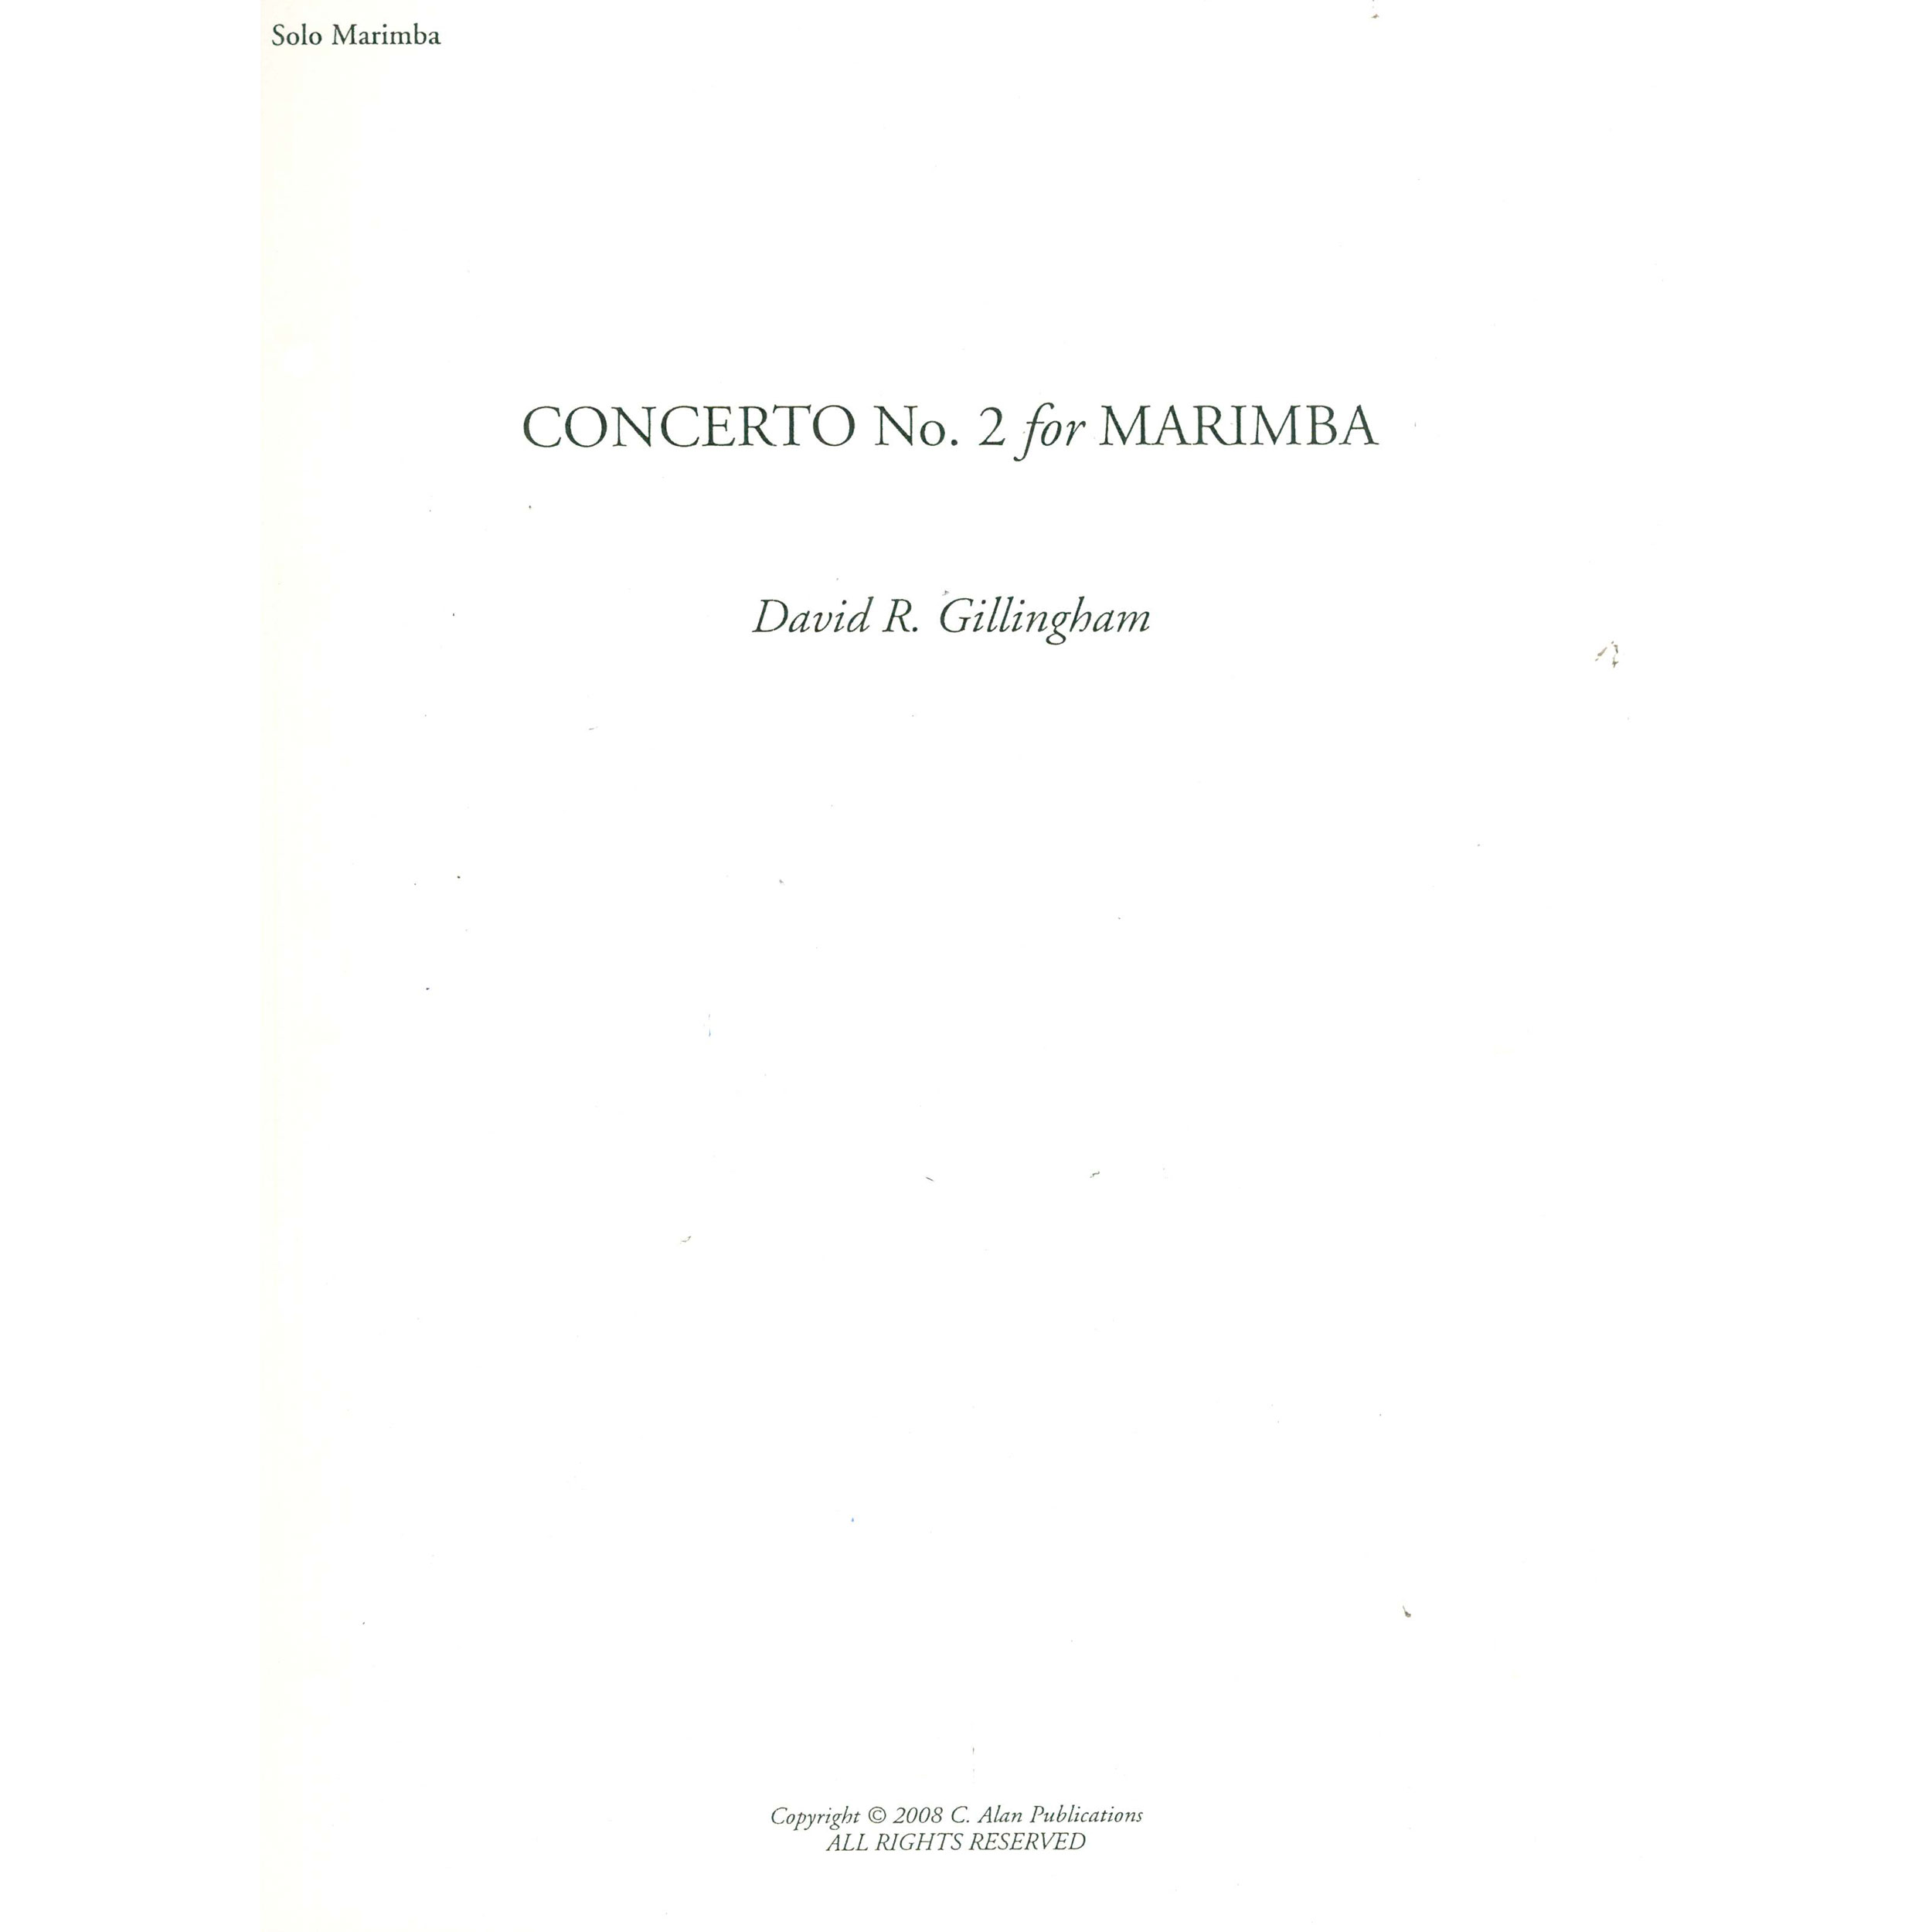 Concerto No. 2 by David R. Gillingham